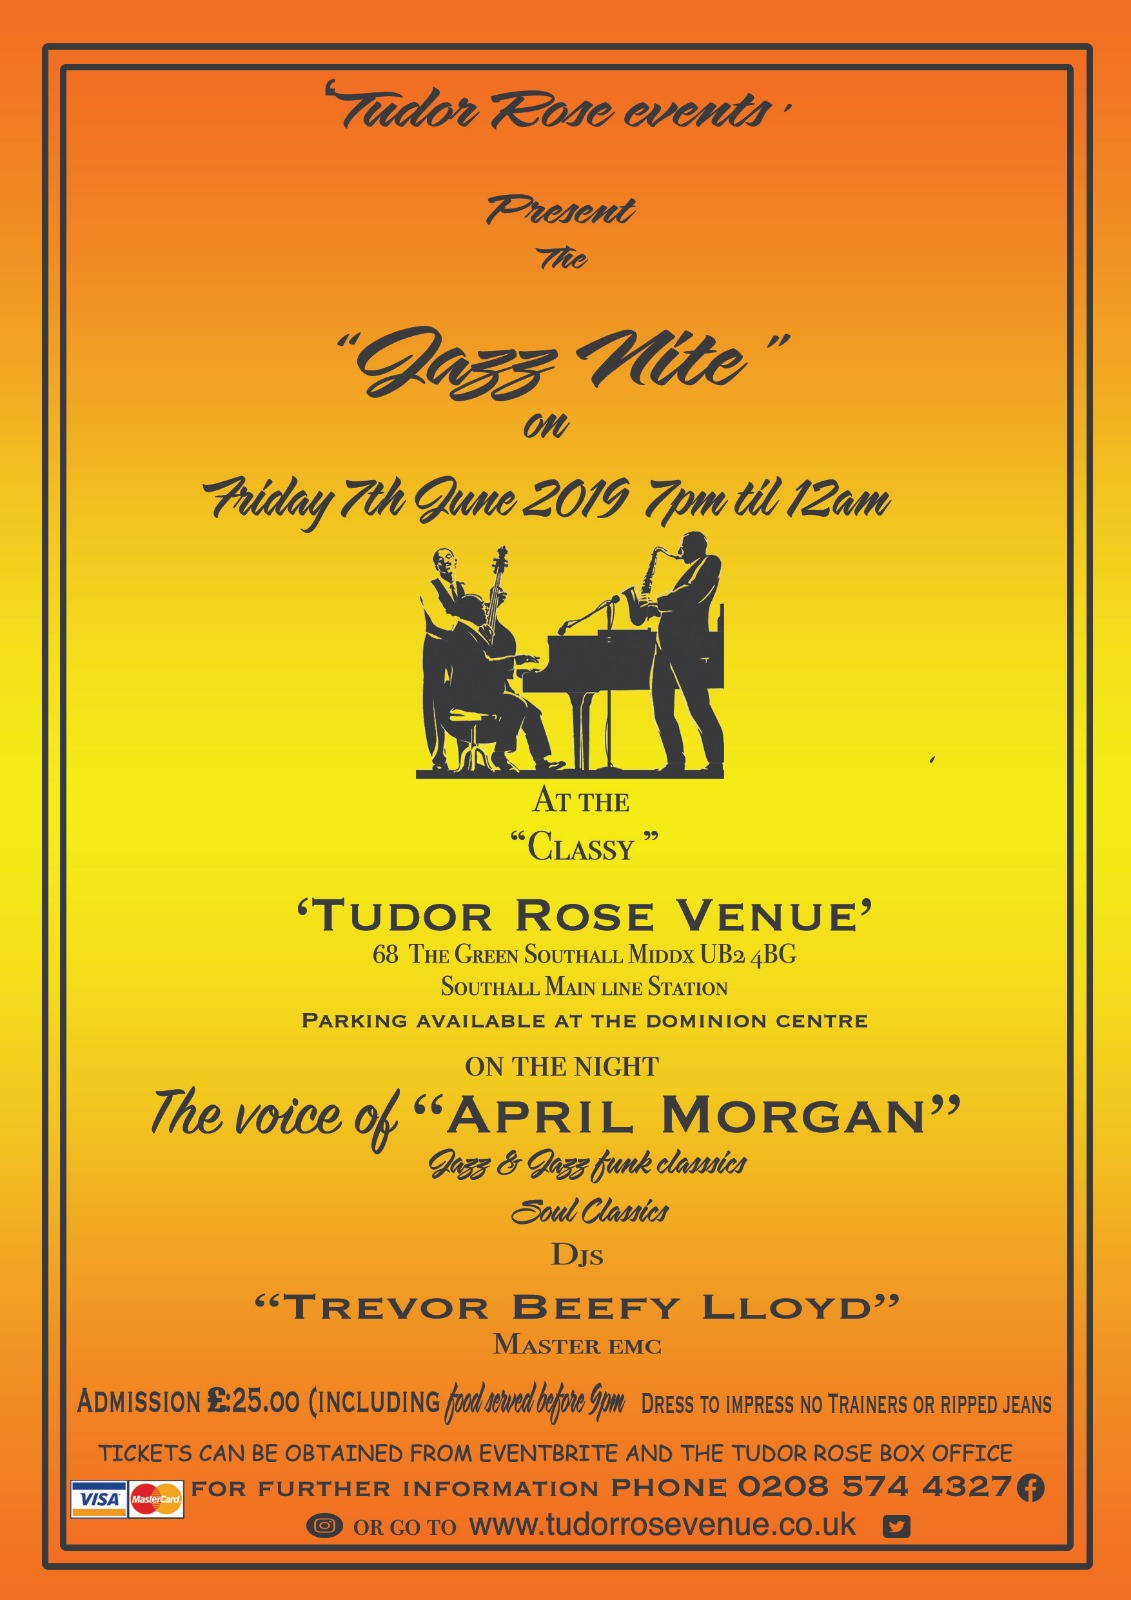 Tudor Rose Events Presents The Jazz Nite 1